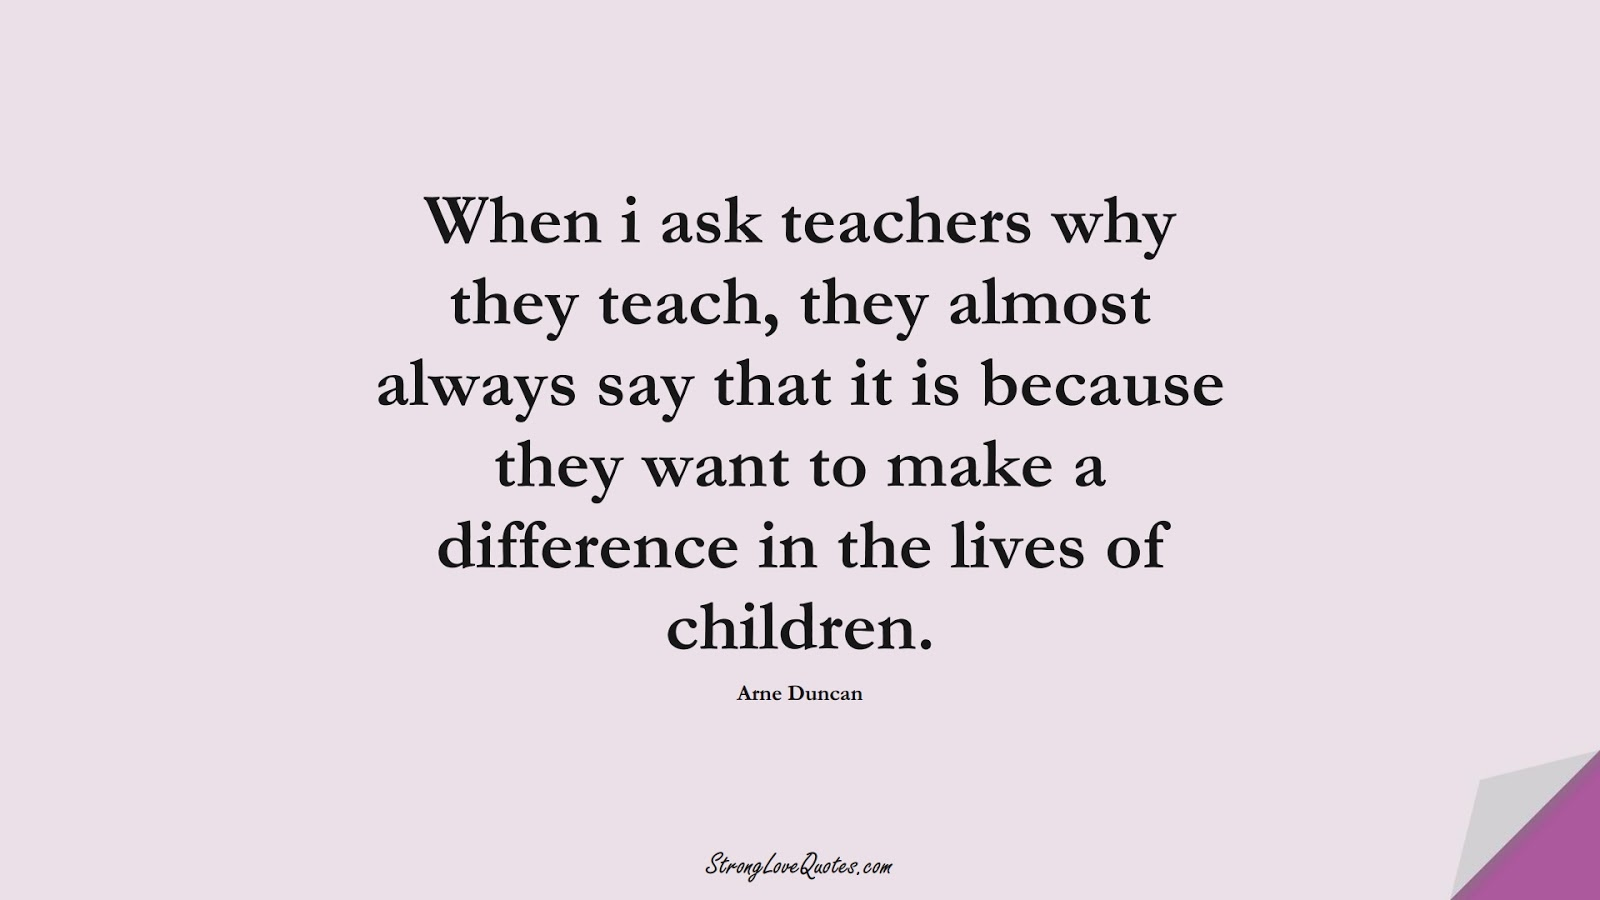 When i ask teachers why they teach, they almost always say that it is because they want to make a difference in the lives of children. (Arne Duncan);  #EducationQuotes